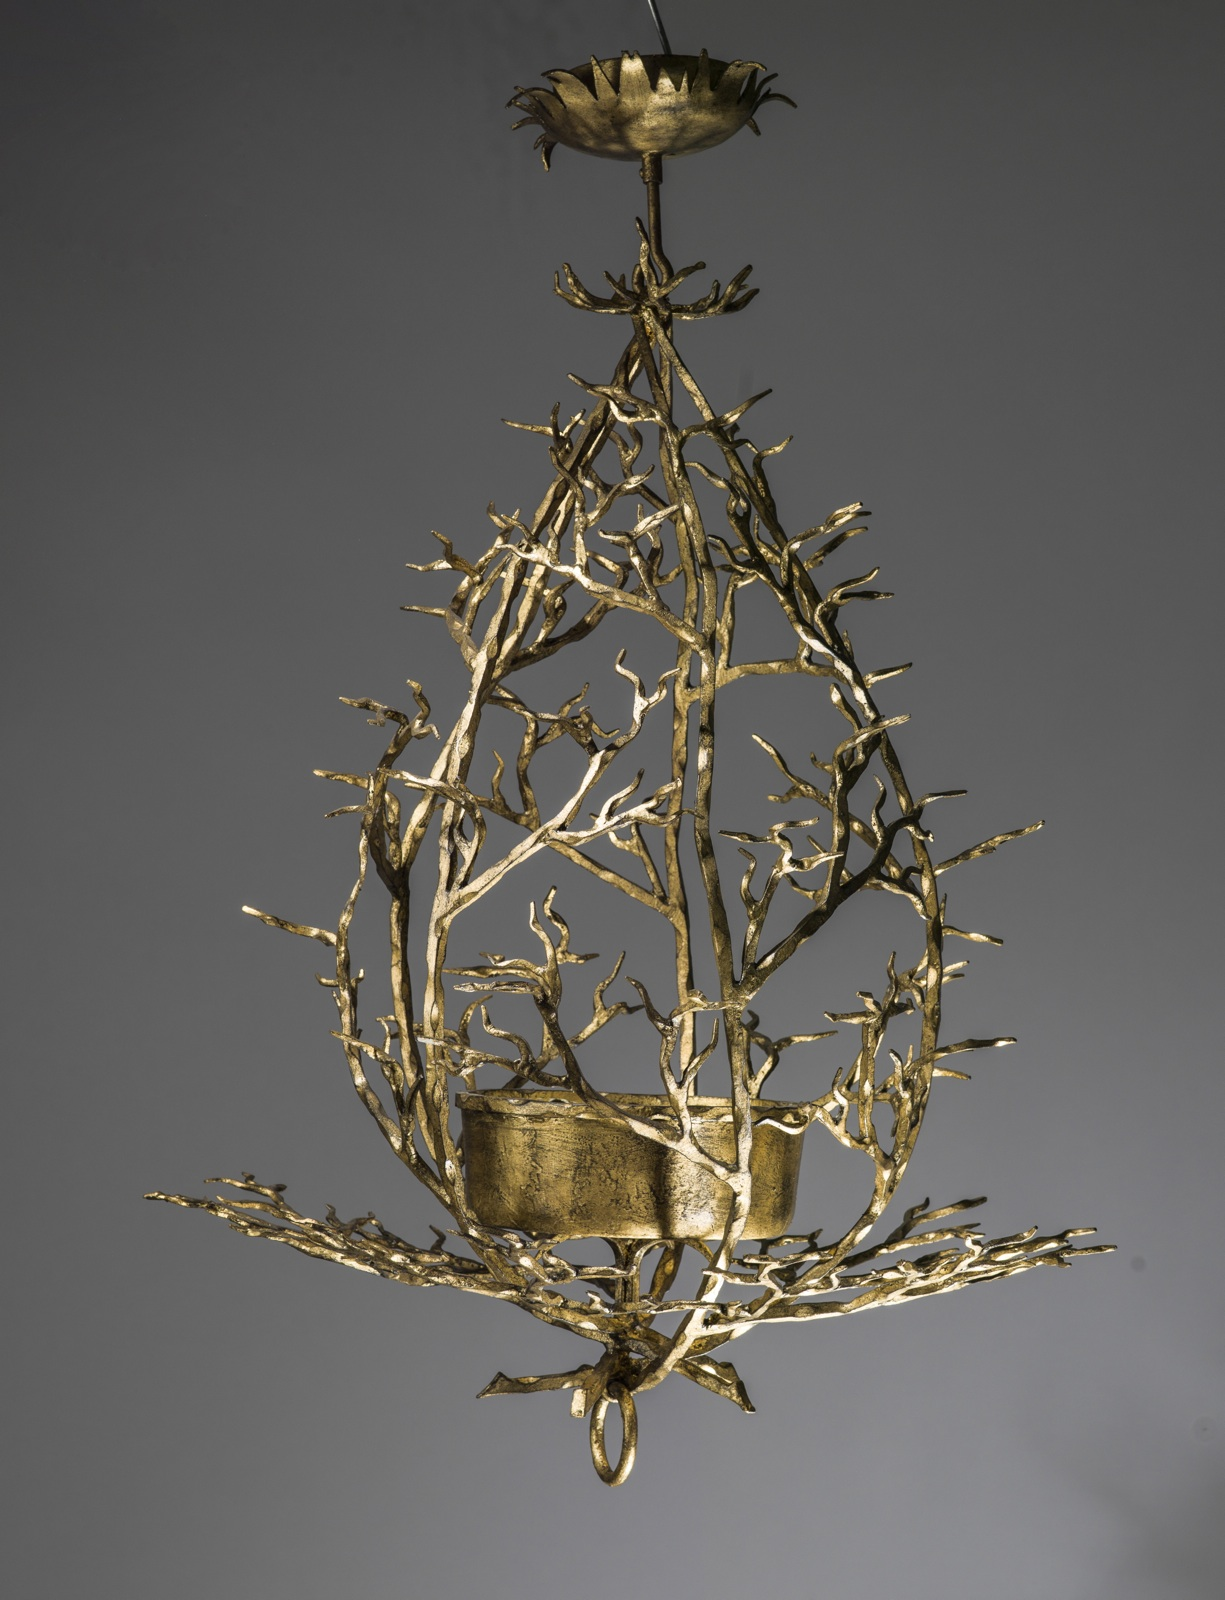 Home Decorative Products Small Wrought Iron Twig Chandelier In Warm Gold Leaf